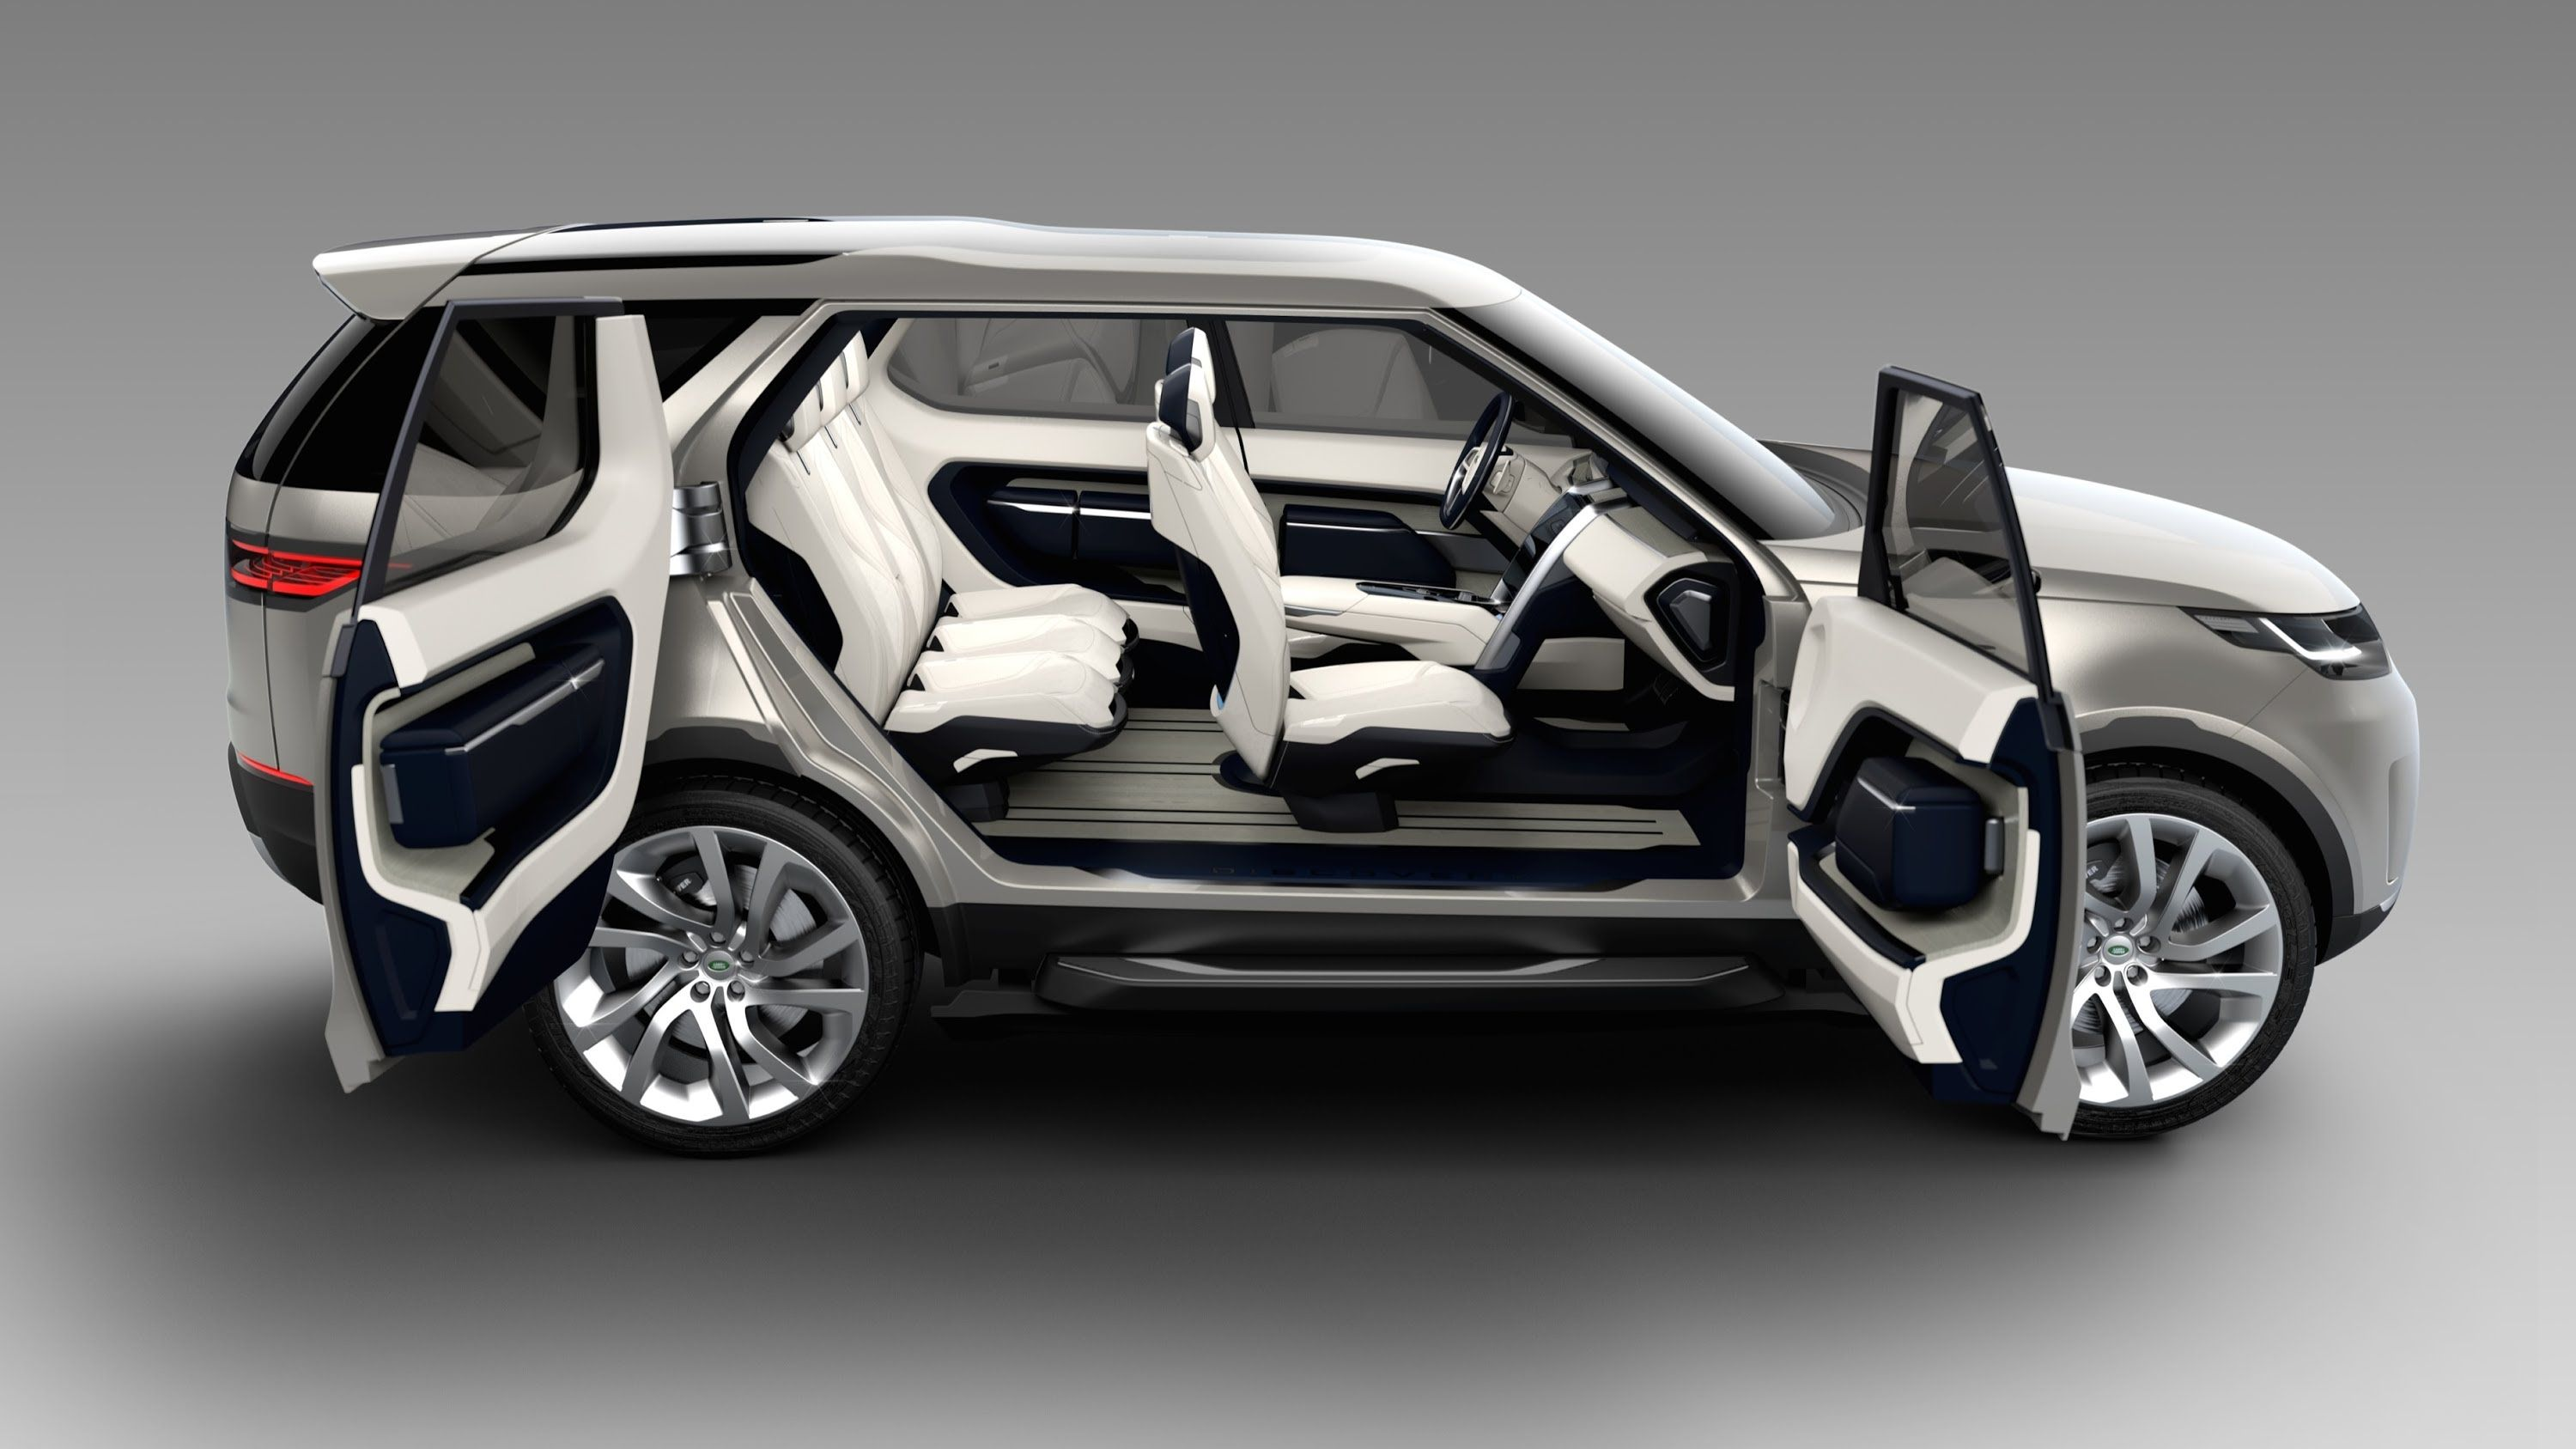 9 Discovery 5 Ideas Discovery 5 Discovery Land Rover Discovery